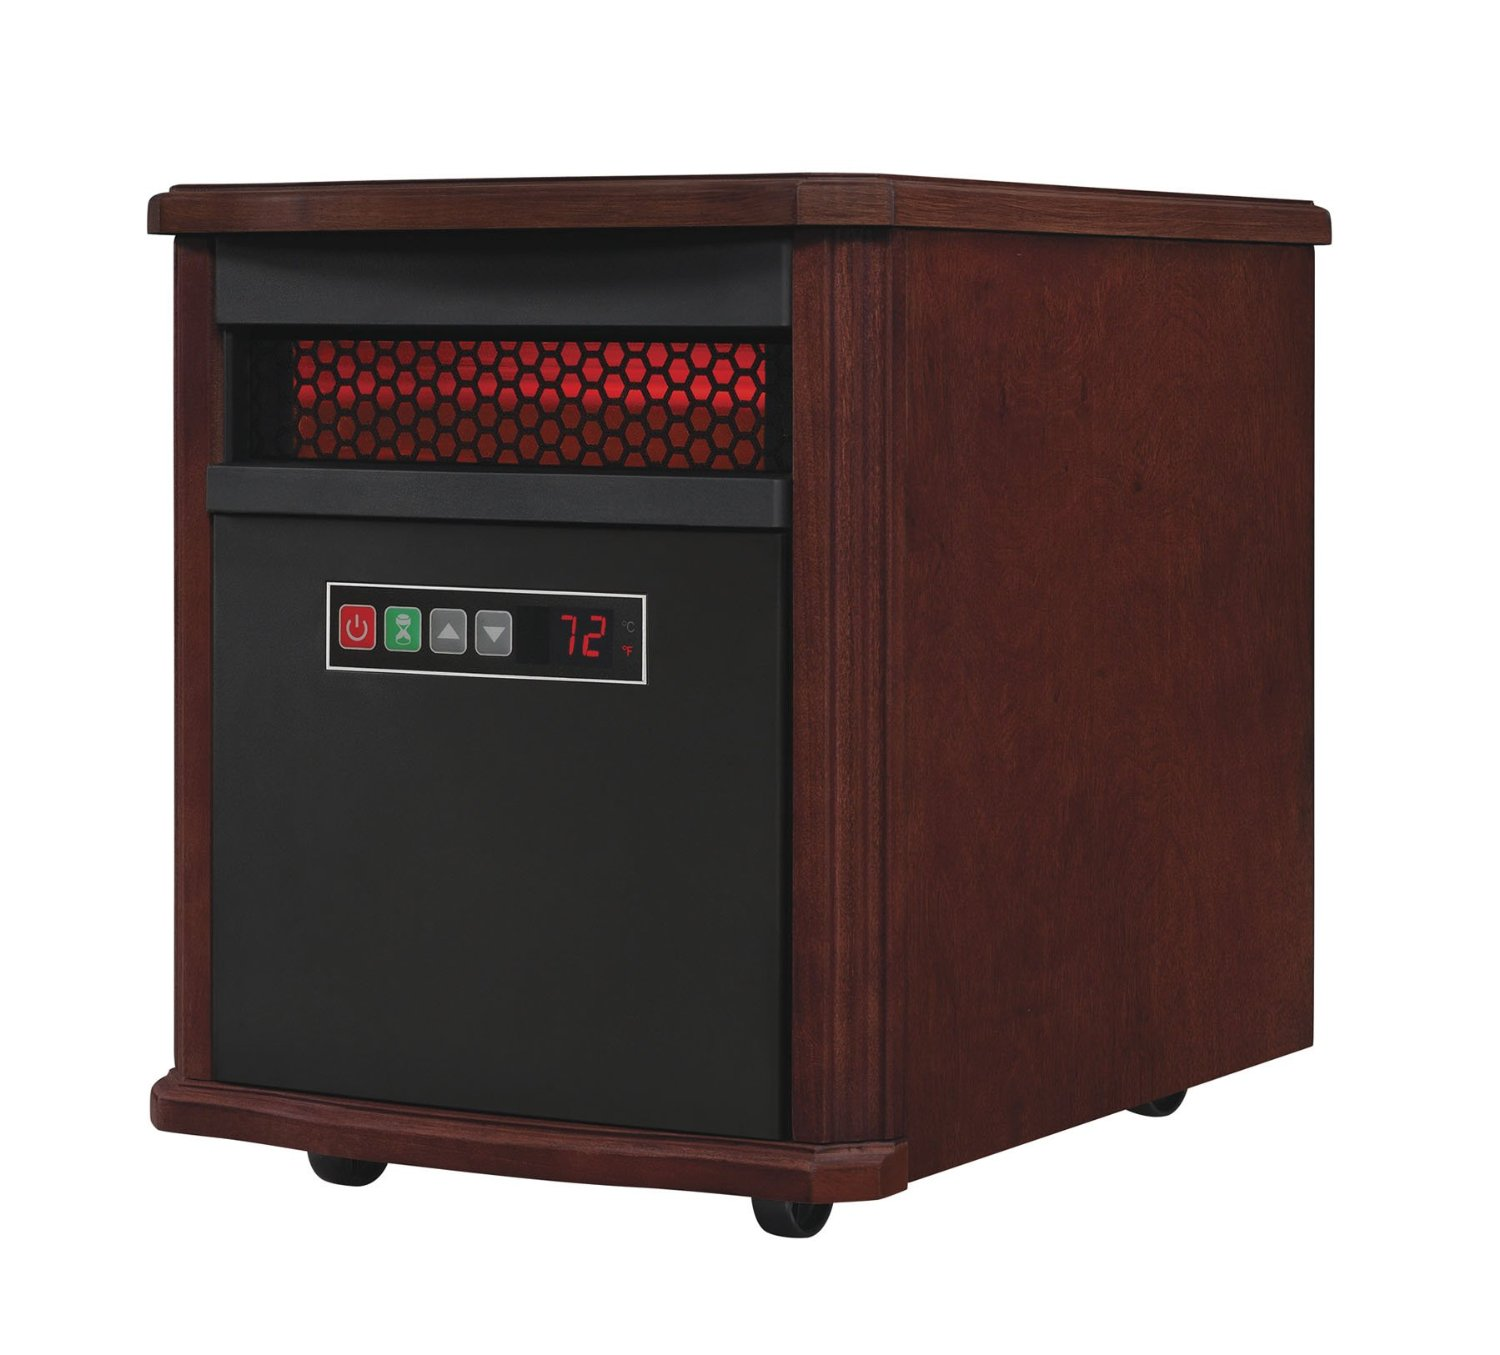 Duraflame 9HM7253-C299 Dark Cherry Infrared Quartz Heater, 5200 BTU at Sears.com